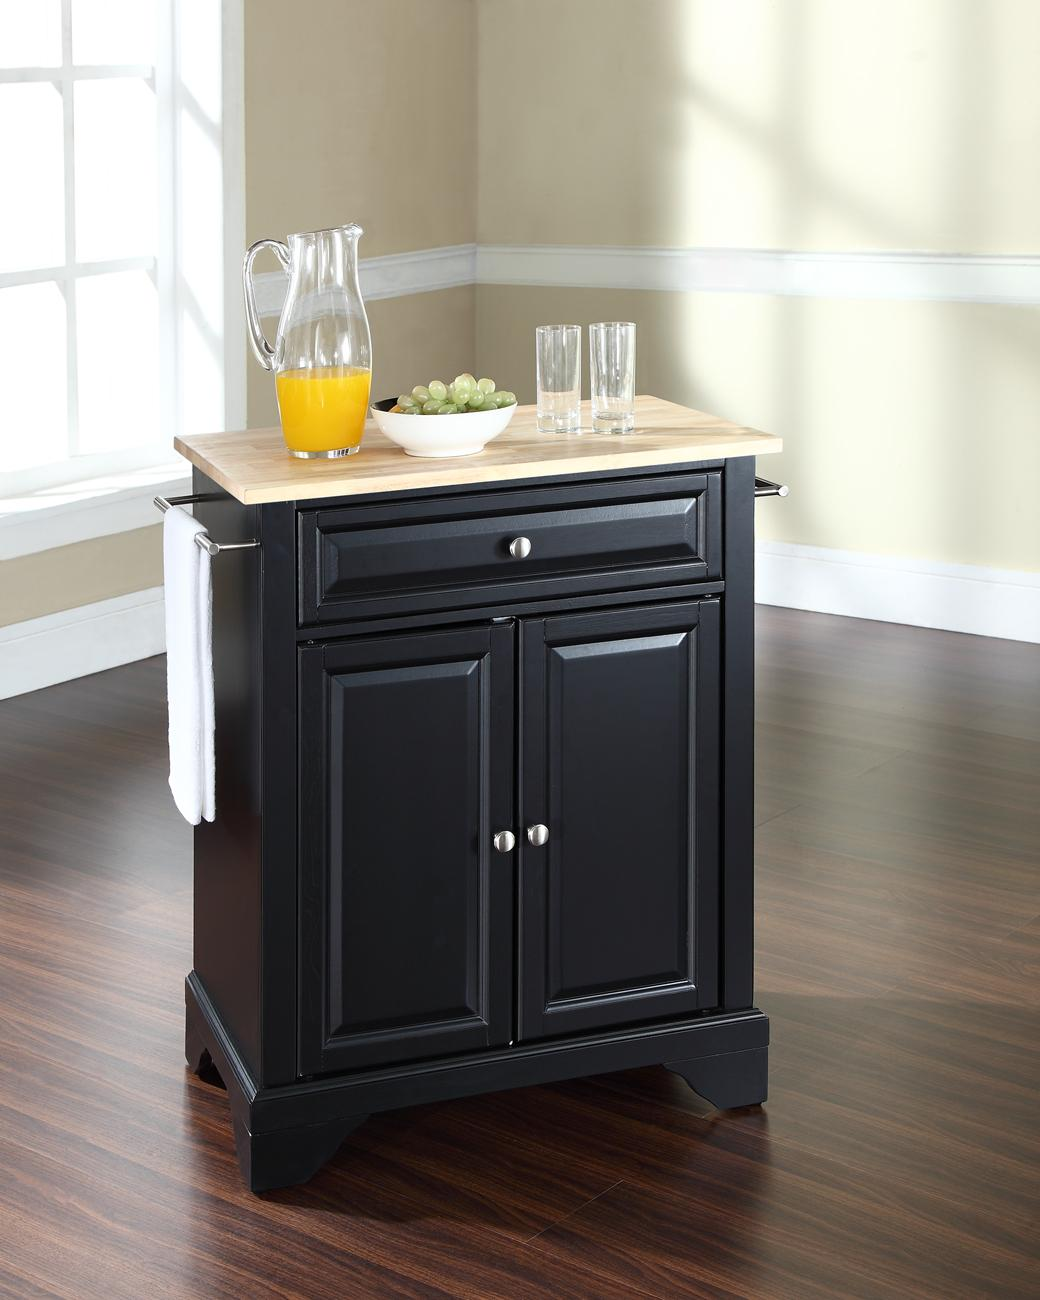 Crosley Lafayette Portable Kitchen Island By Oj Commerce. Pioneer Basement Waterproofing Inc. Tile For Basement Floor. Cost Of Tanking A Basement. Cost Of Concrete Basement. Home Gym Design Ideas Basement. 1 Story House Plans With Basement. Basement Apartments For Rent In Ajax. States With Basements